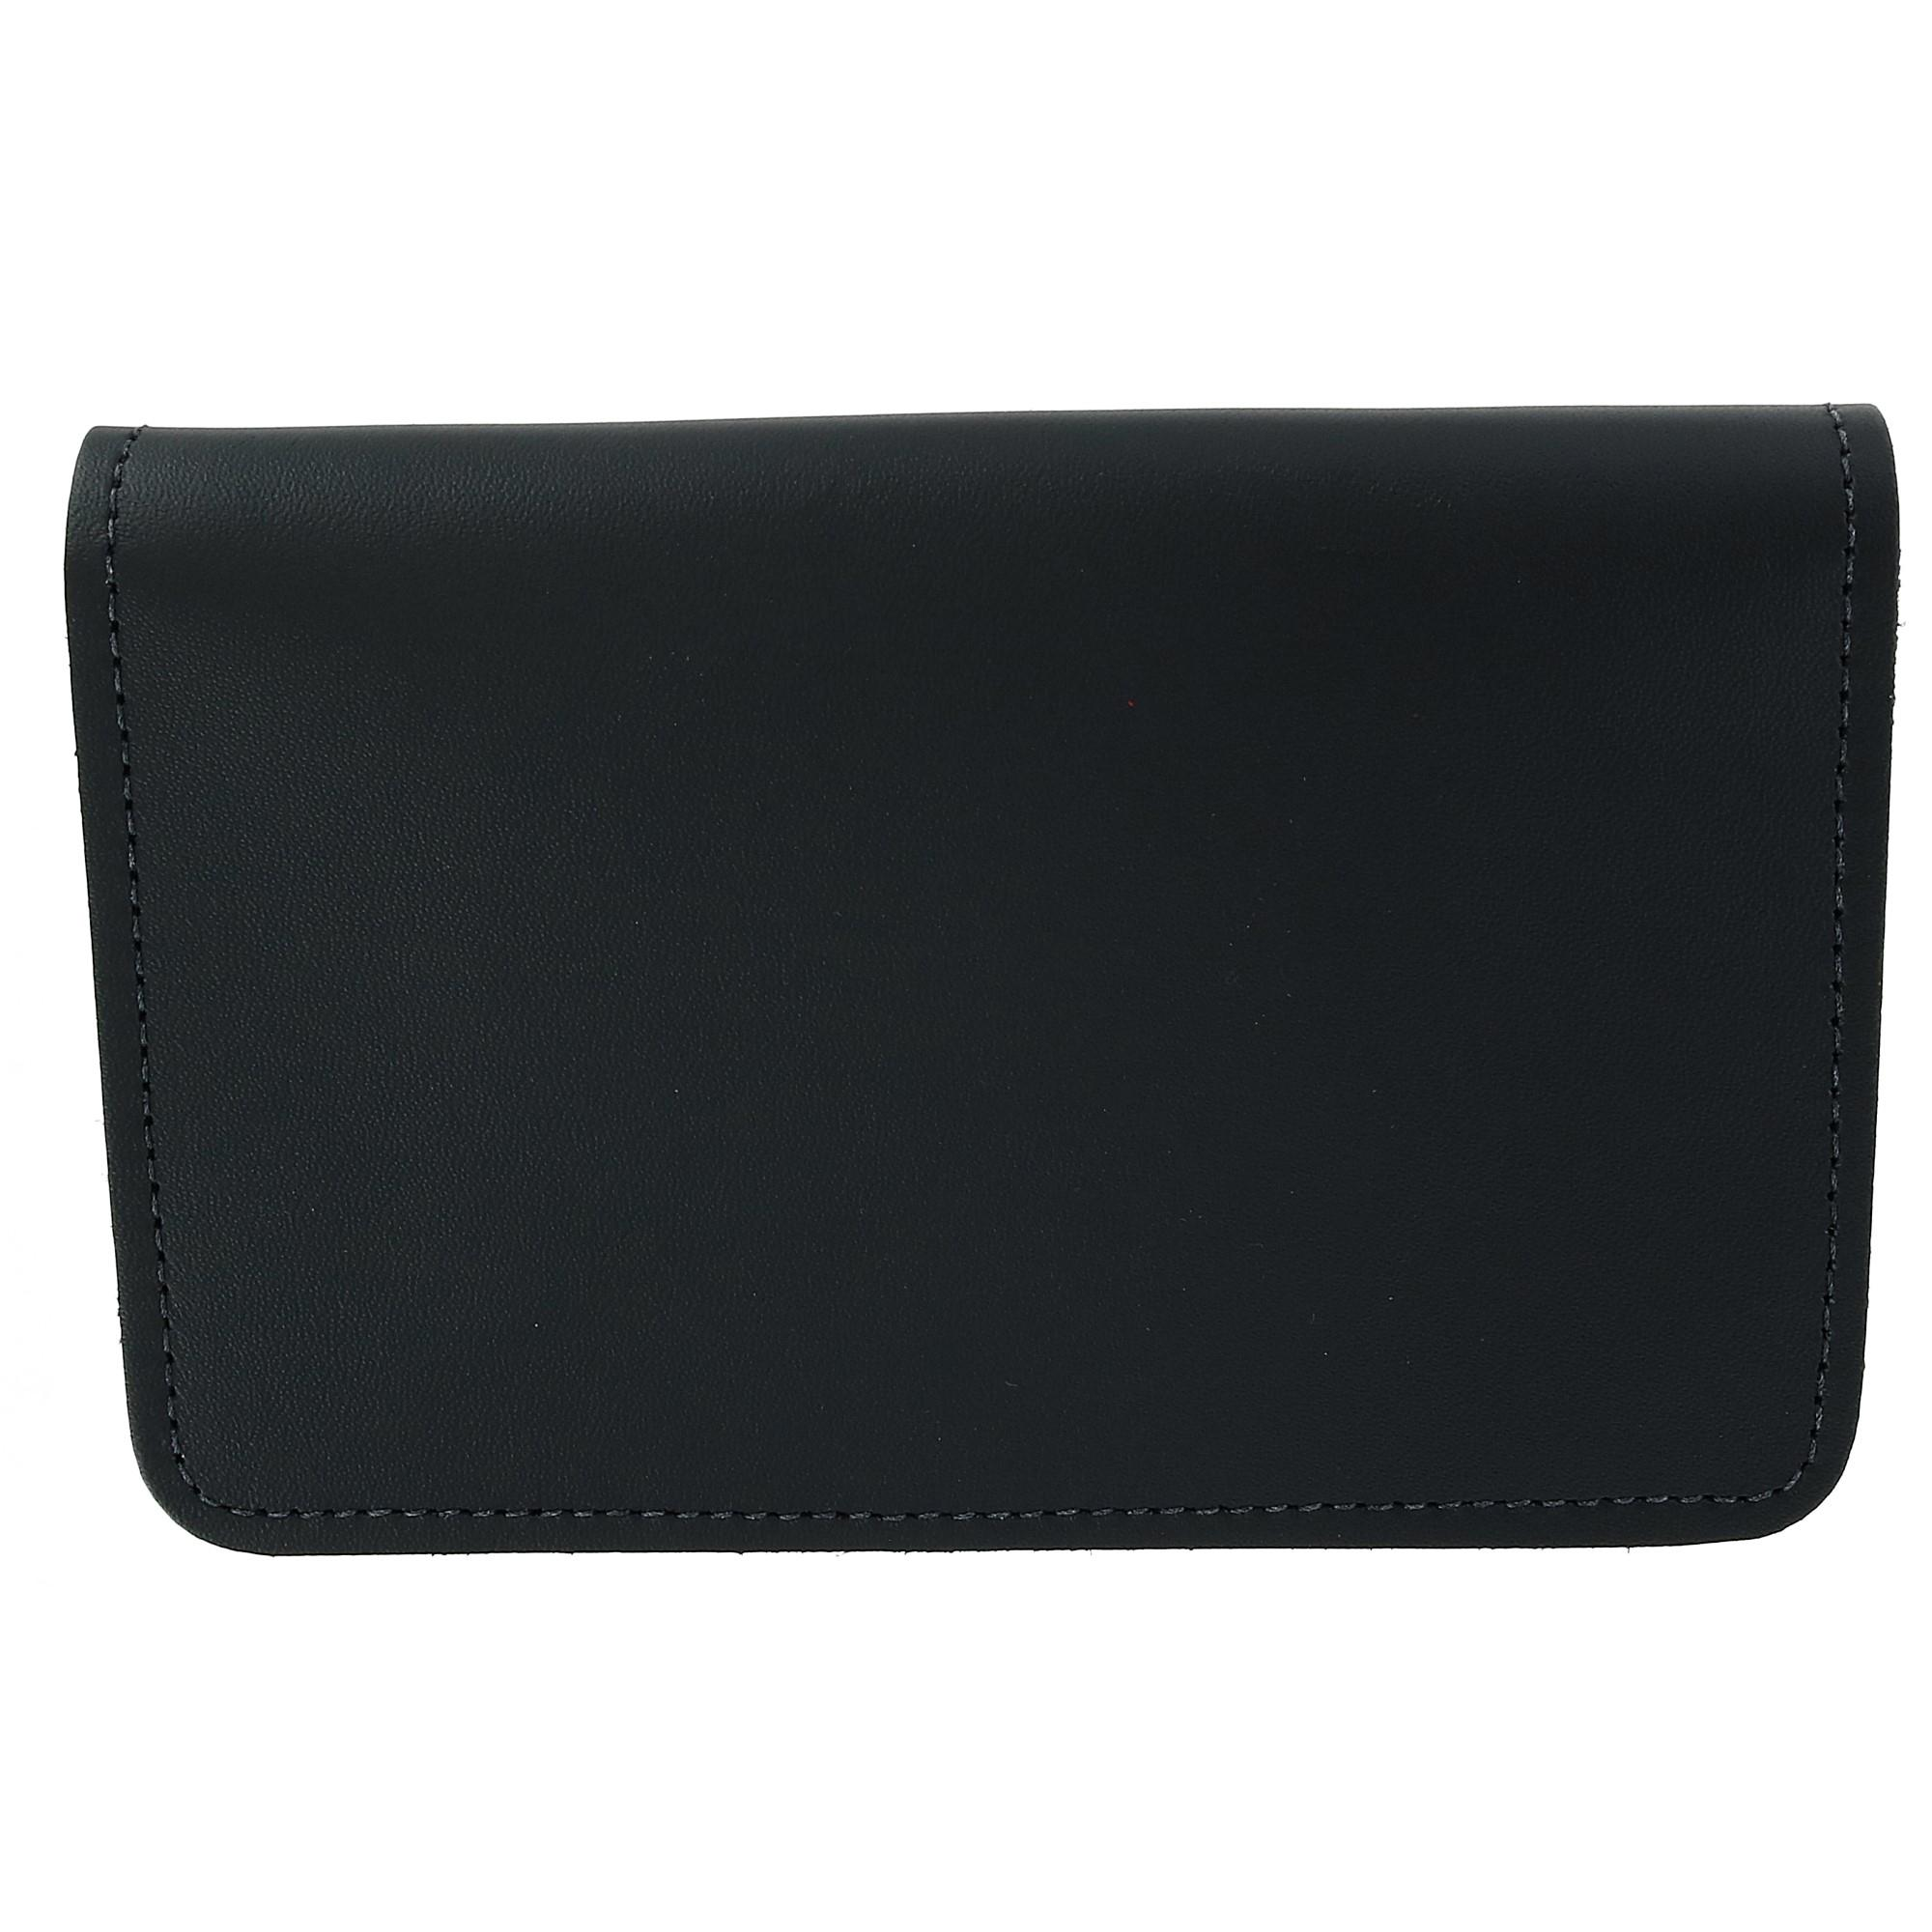 CTM_Leather_Top_Stub_Checkbook_Cover_-_Black_one_size